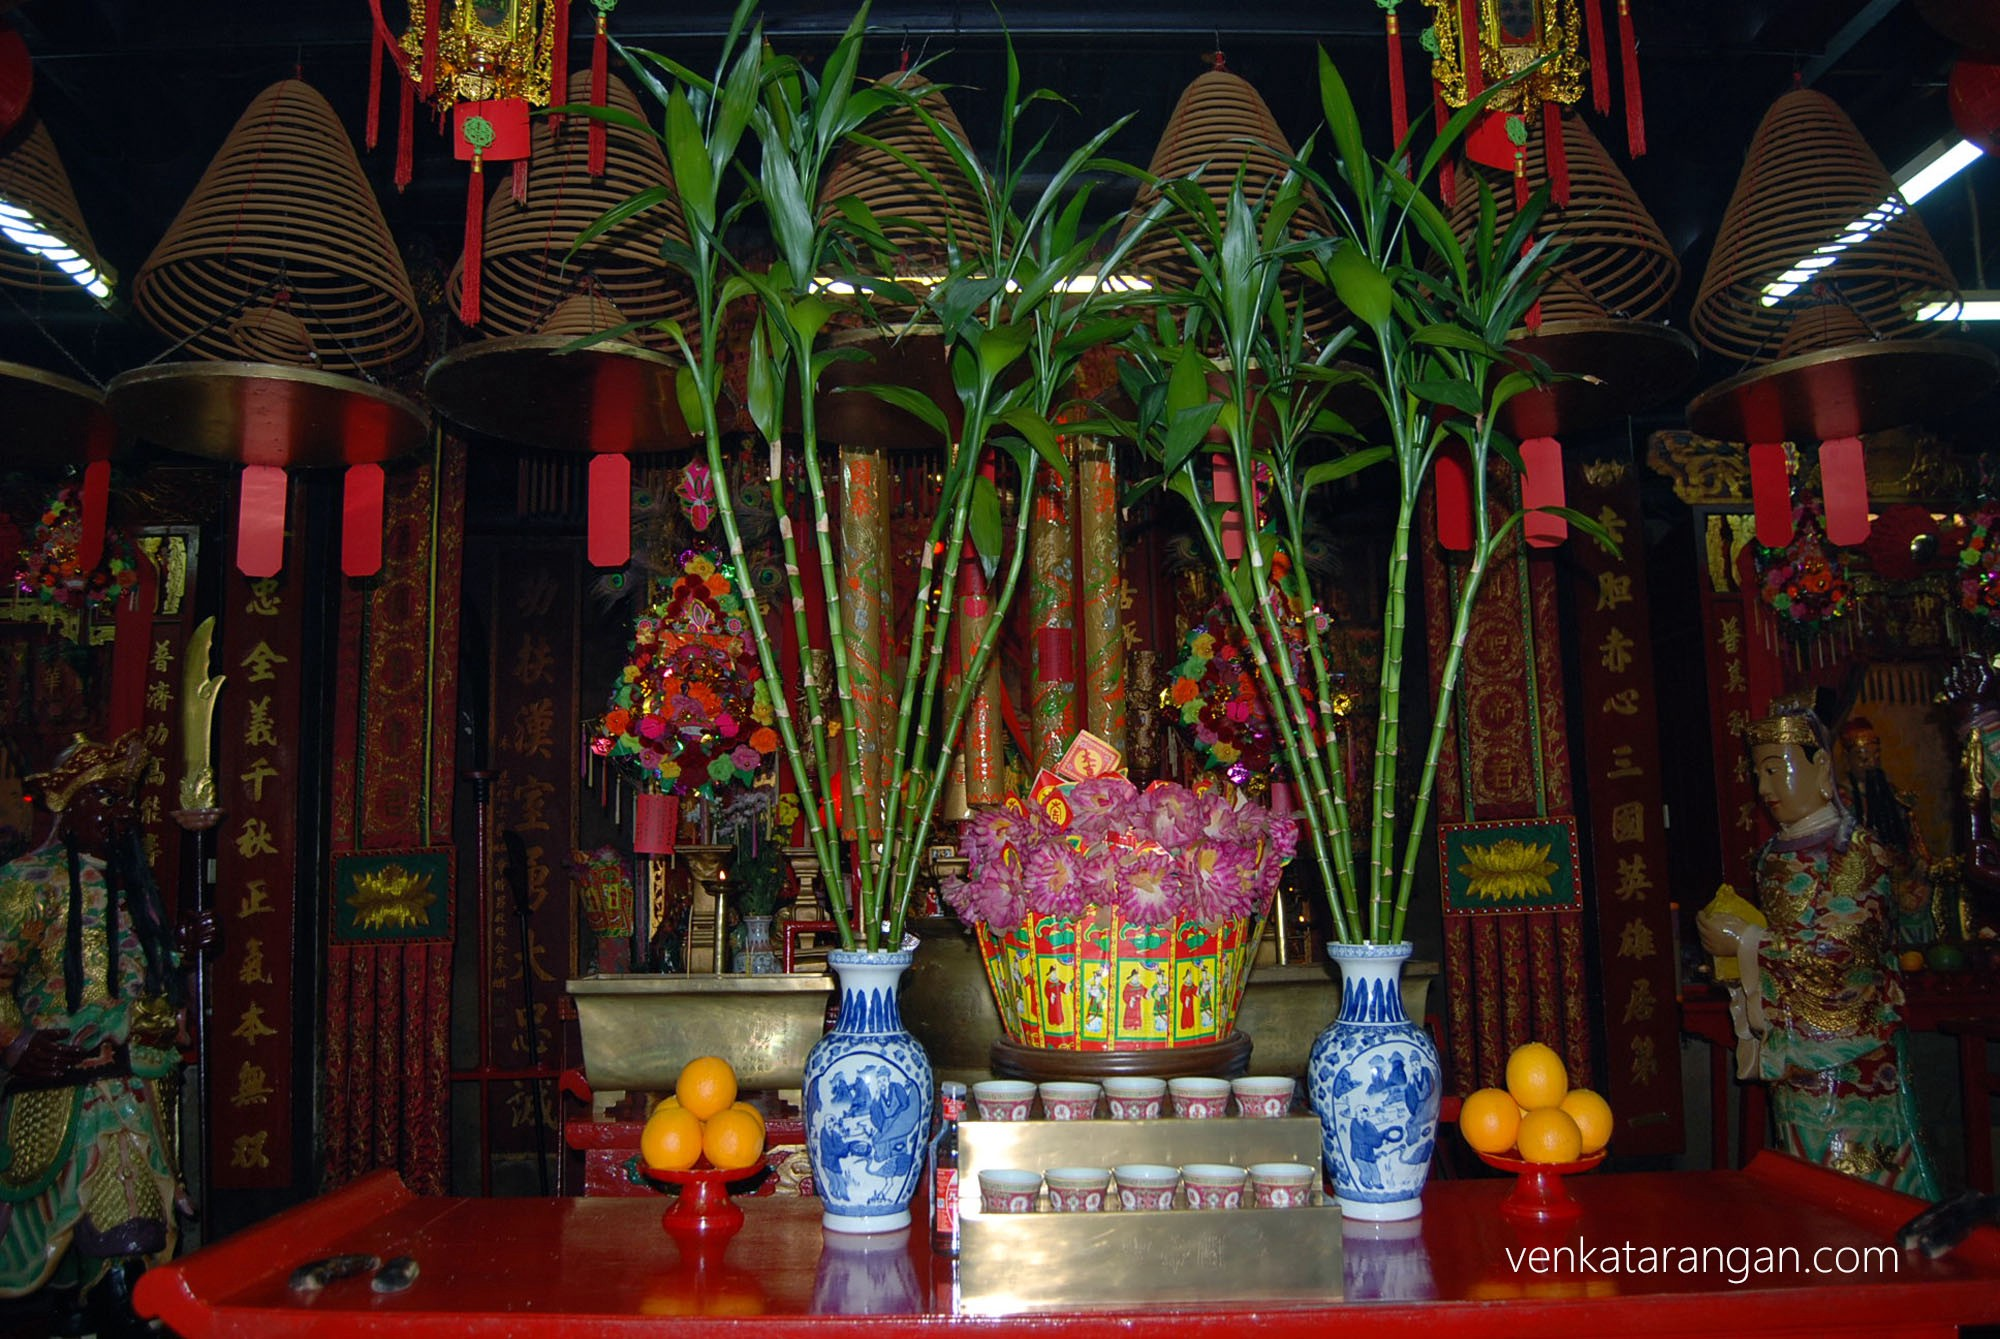 Offerings - Kwan Tai Old Temple - Tai O